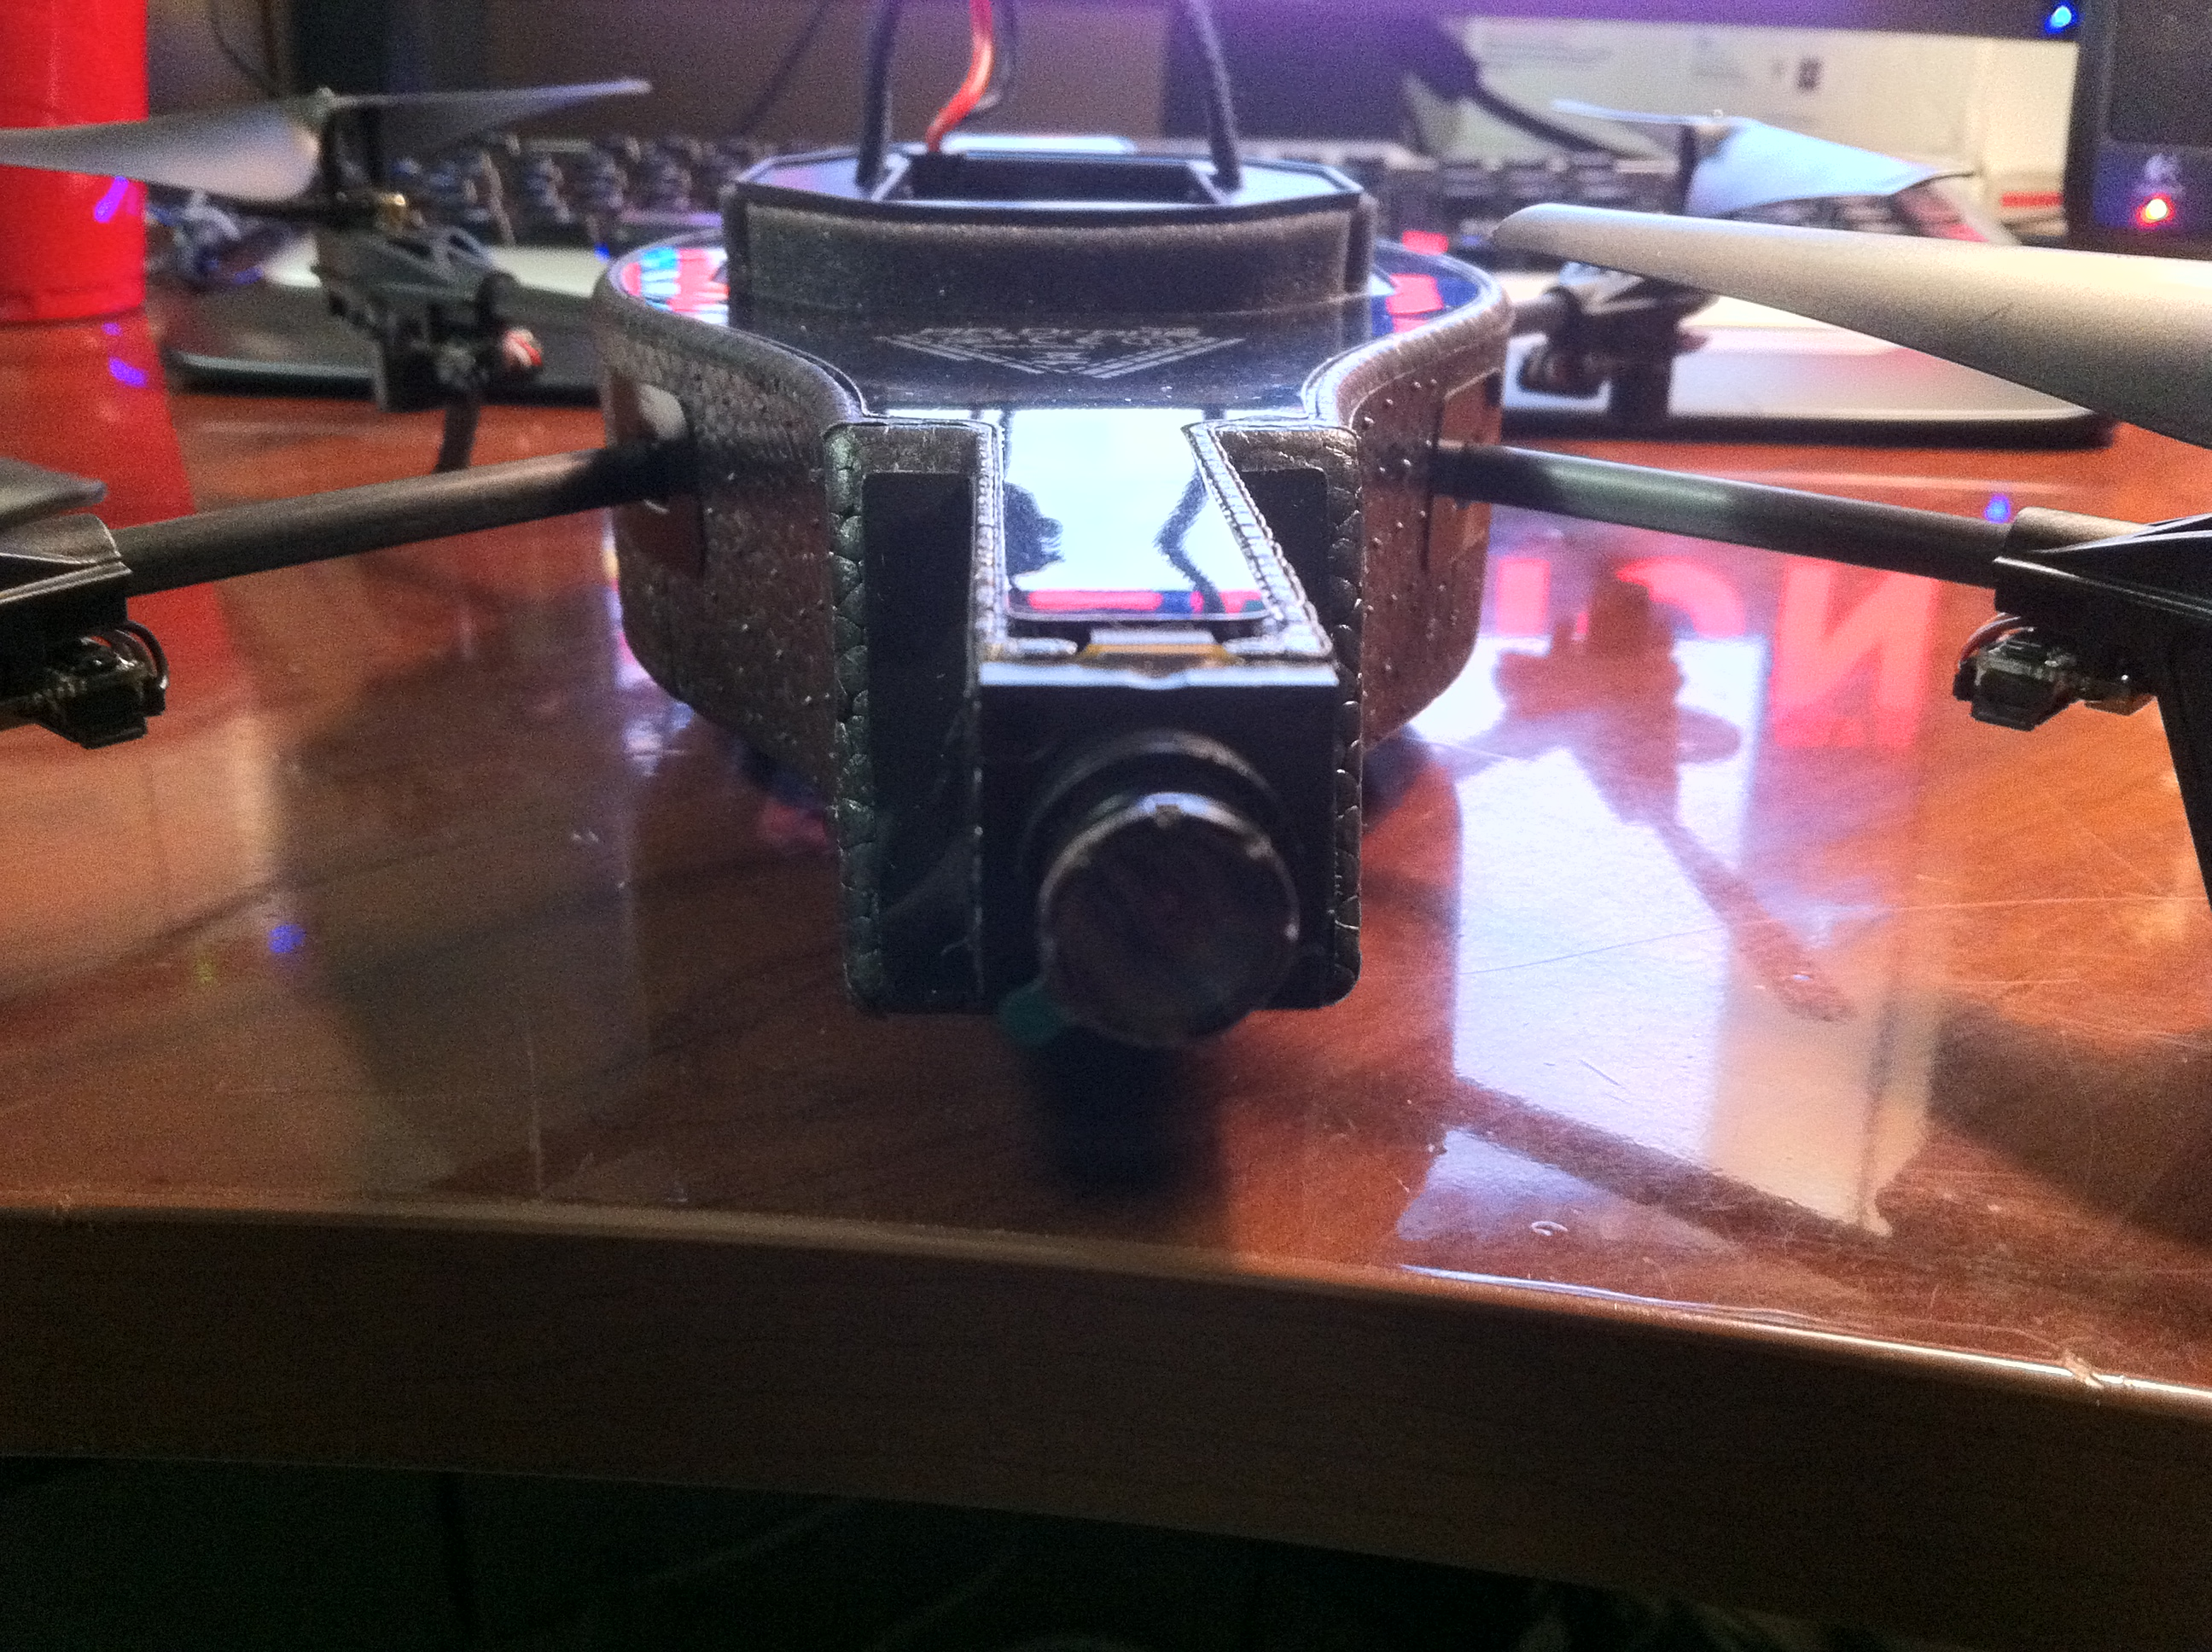 an image of drone%20Camera AR Drone - Front Camera.jpg